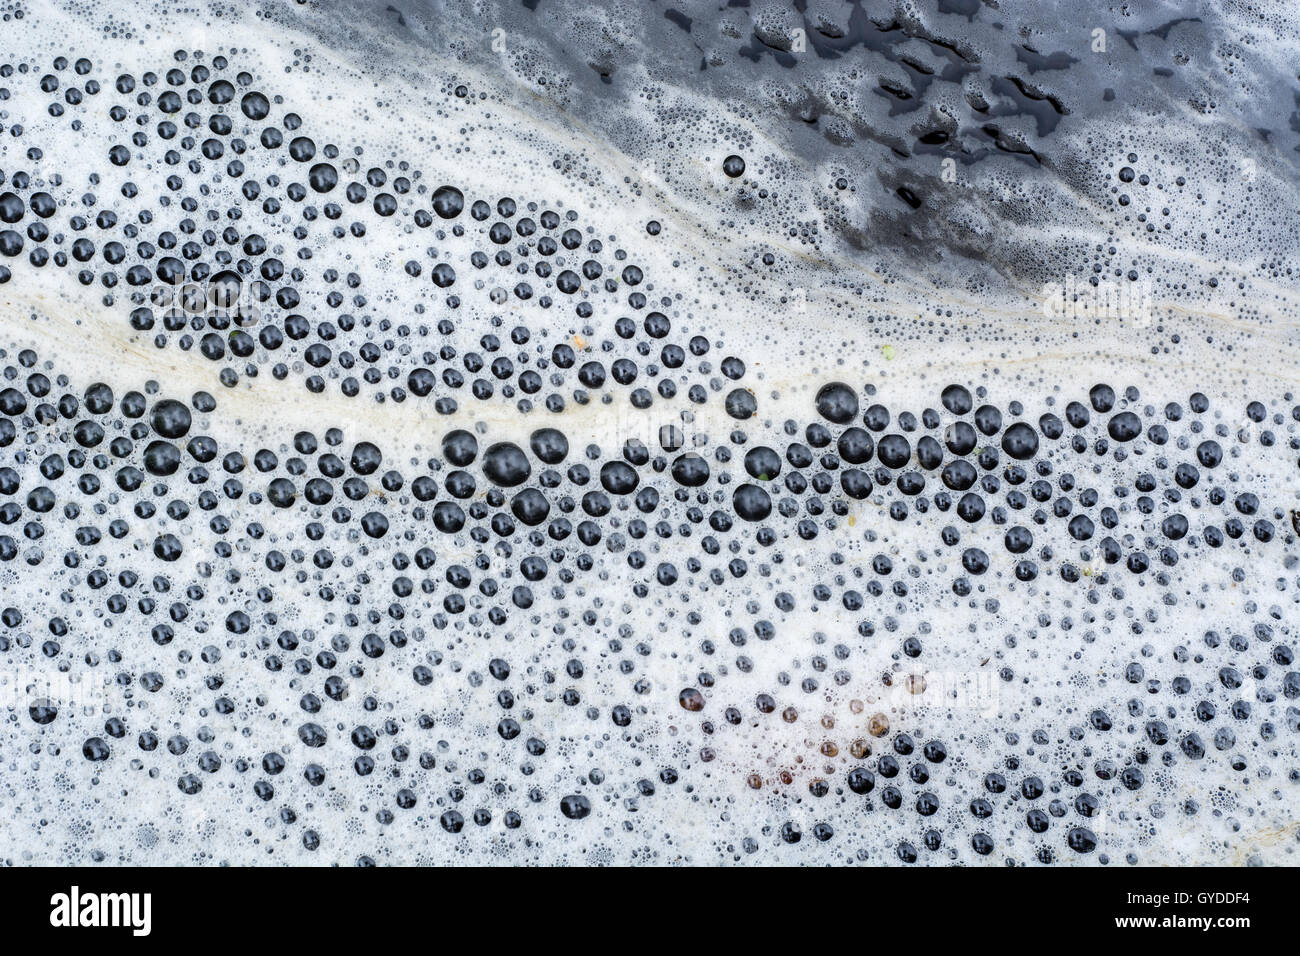 Organic scum forming foam line on surface of river. White and brown foam on water near shore with low flow rate - Stock Image